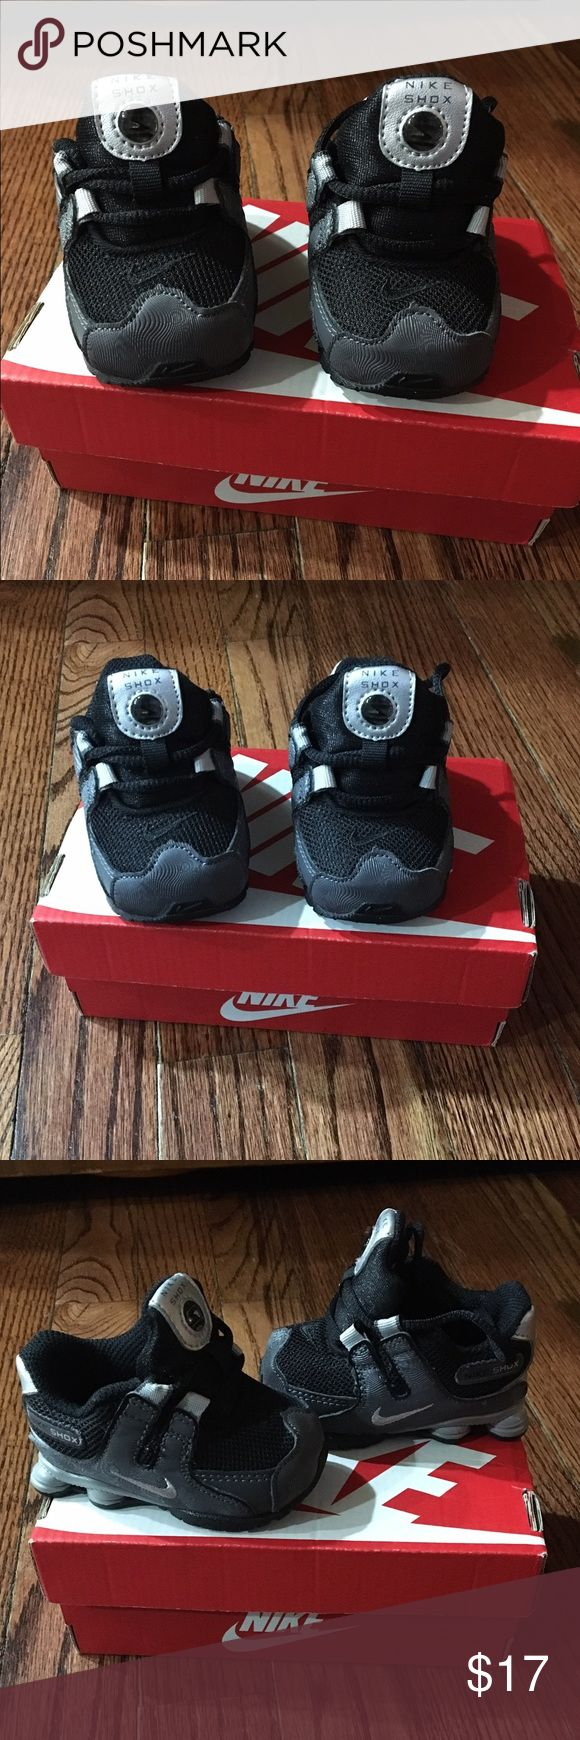 Infant Nike shox nz sms (ps) black/gray size 2y These are NEW in box! (worn once by an infant) Nike shox nz sms (ps) in black, metallic silver and dark gray. Size is 2 for baby. Nike Shoes Sneakers